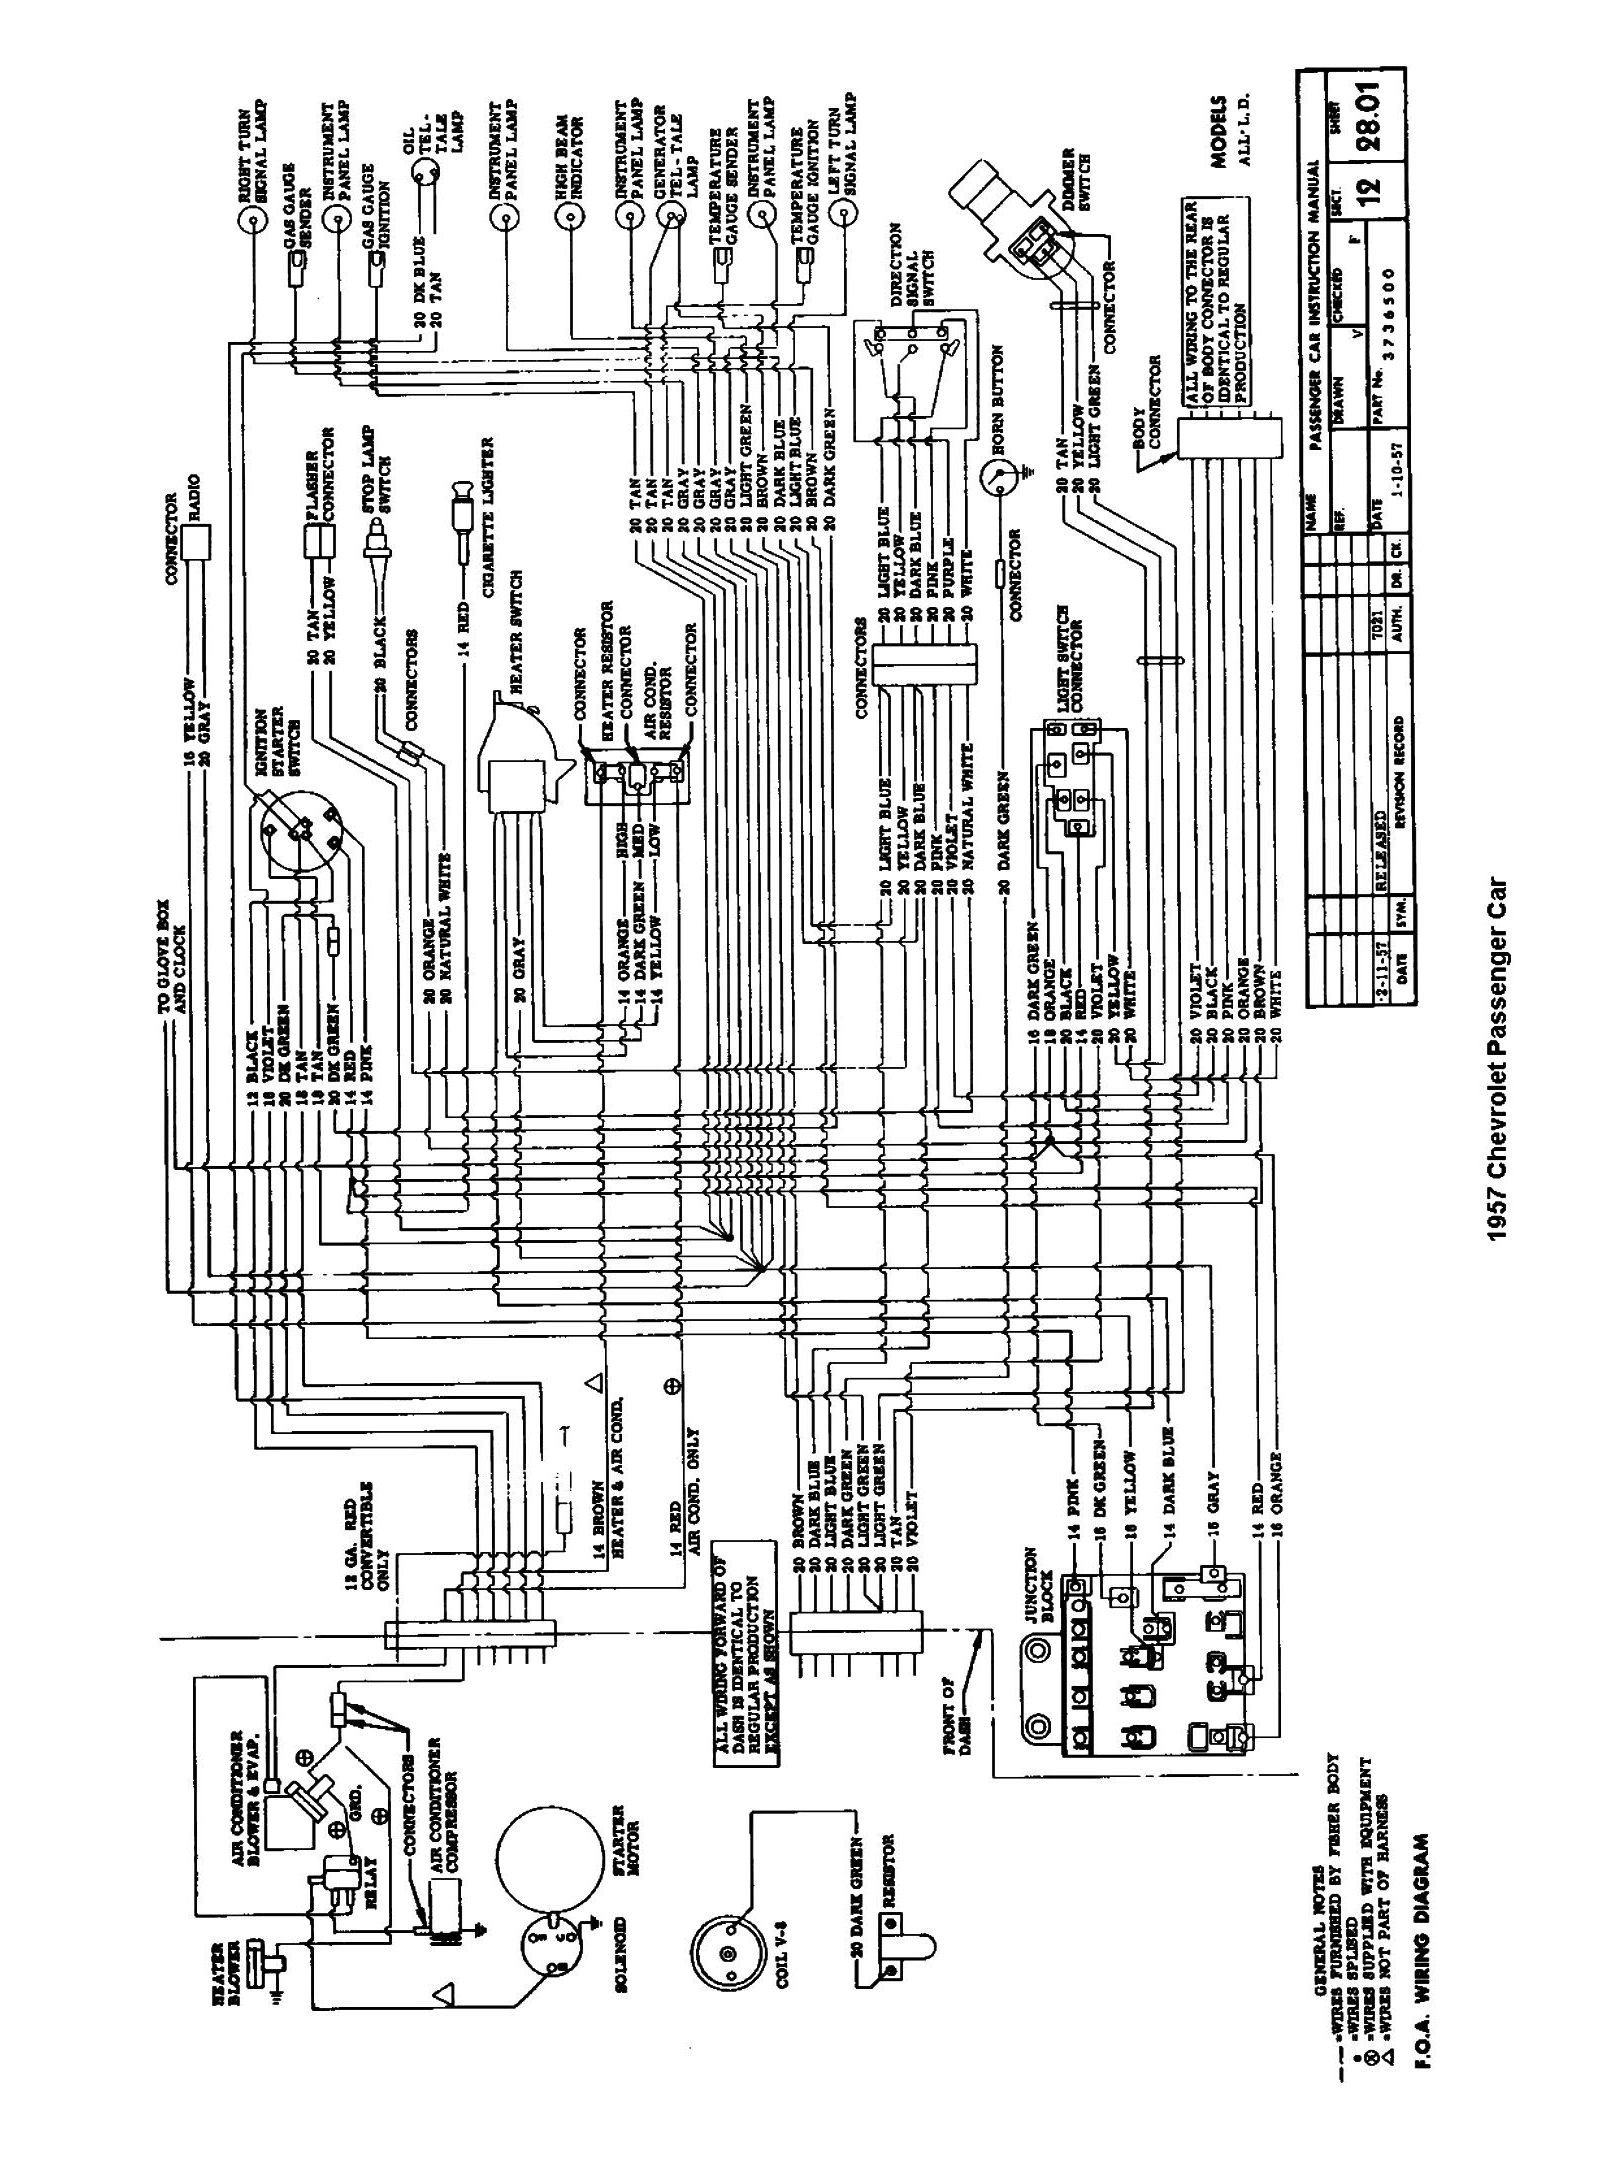 hight resolution of vauxhall nova wiring diagram